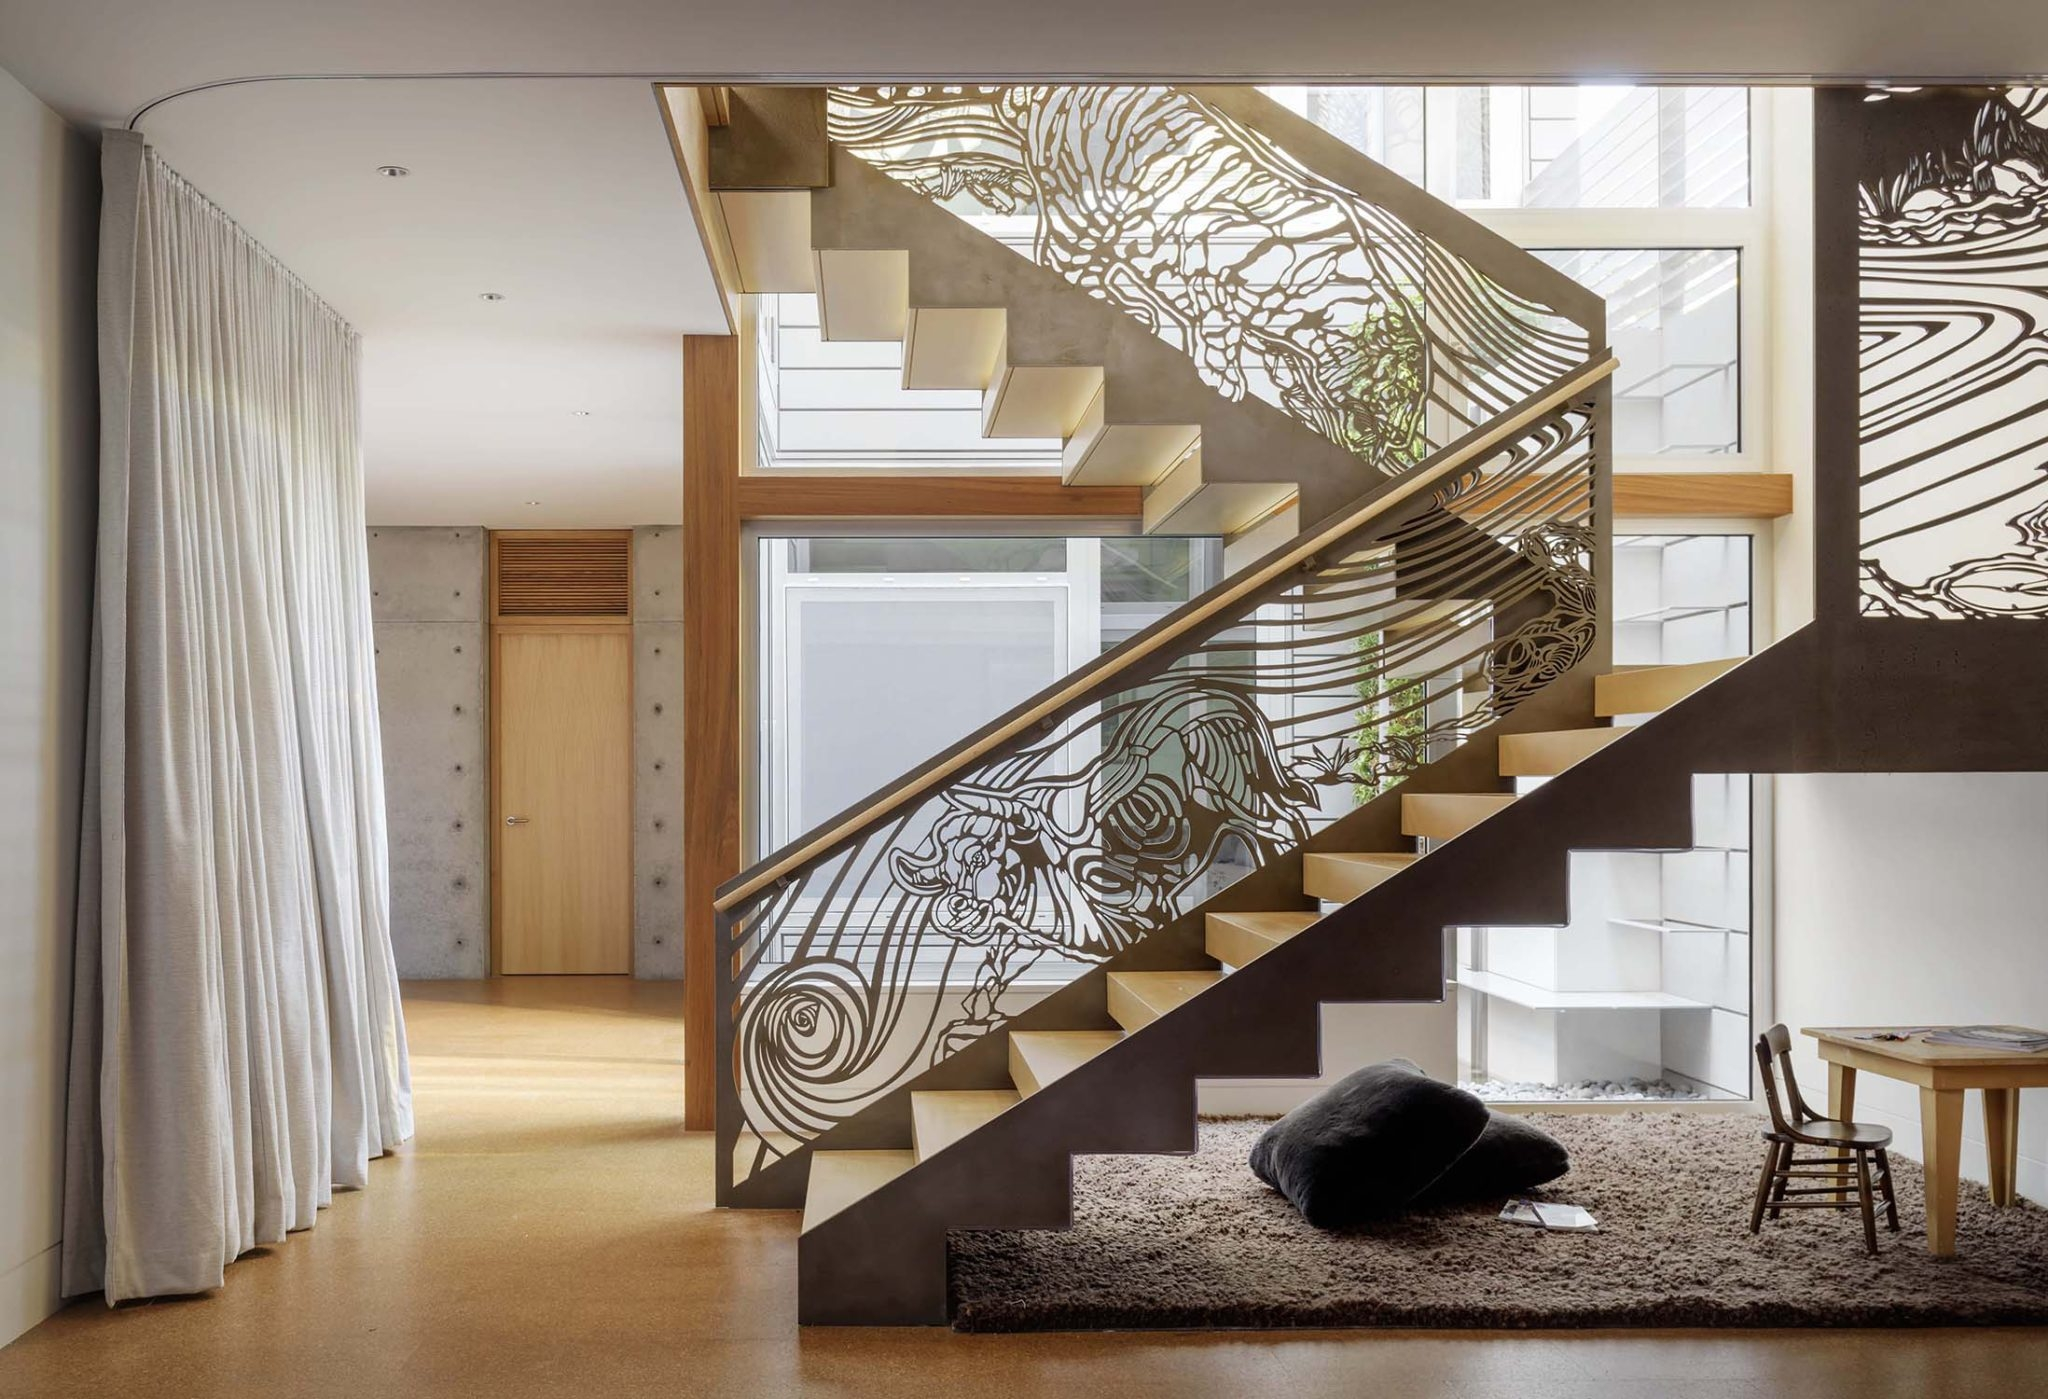 Unique Beautiful Banister Designs Chairish Blog | Designer Handrails For Stairs | Wood | Wrought Iron Balusters | Railing Ideas | Interior | Stair Parts